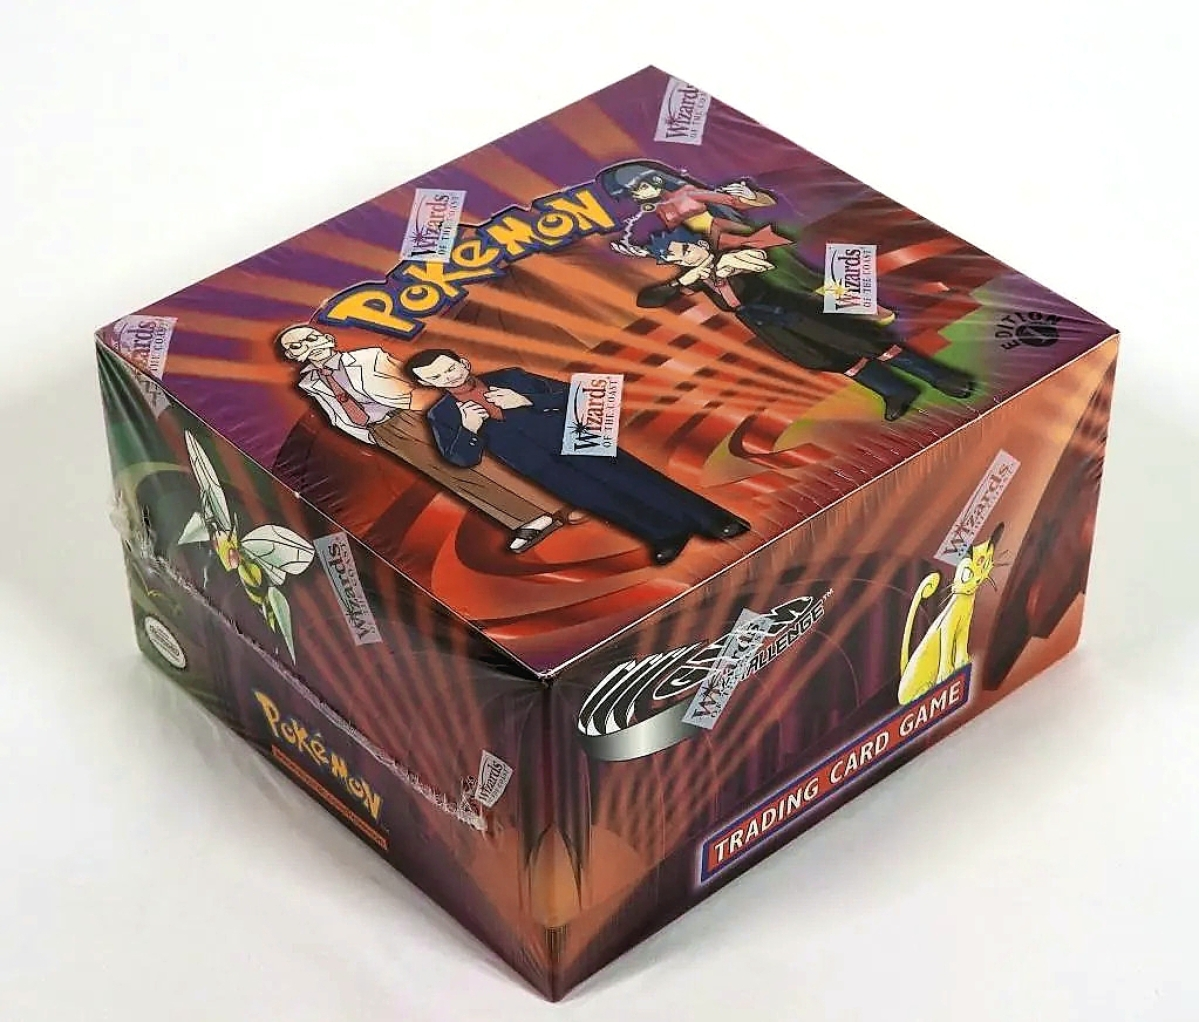 An Orlando collector contacted Landry after seeing him appraise a Magic card on Antiques Roadshow. He had a number of sealed Pokémon booster boxes and packs, the highest of which was this factory sealed first edition Pokémon Gym Challenge box that sold for $17,500.